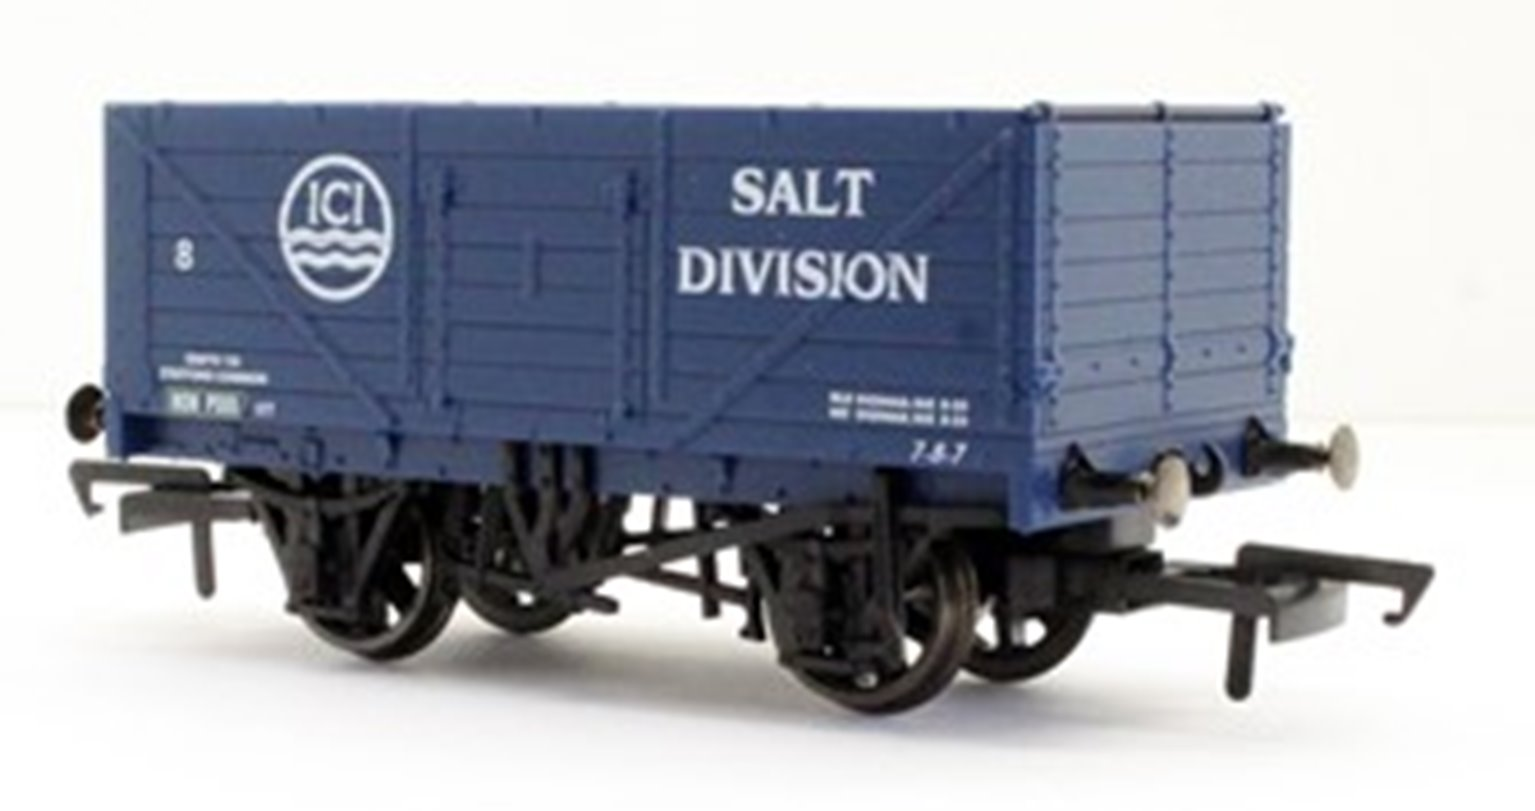 Oxford Rail GV6020 (OX76SPE010) 3 pack ICI salt 7 Plank open wagon